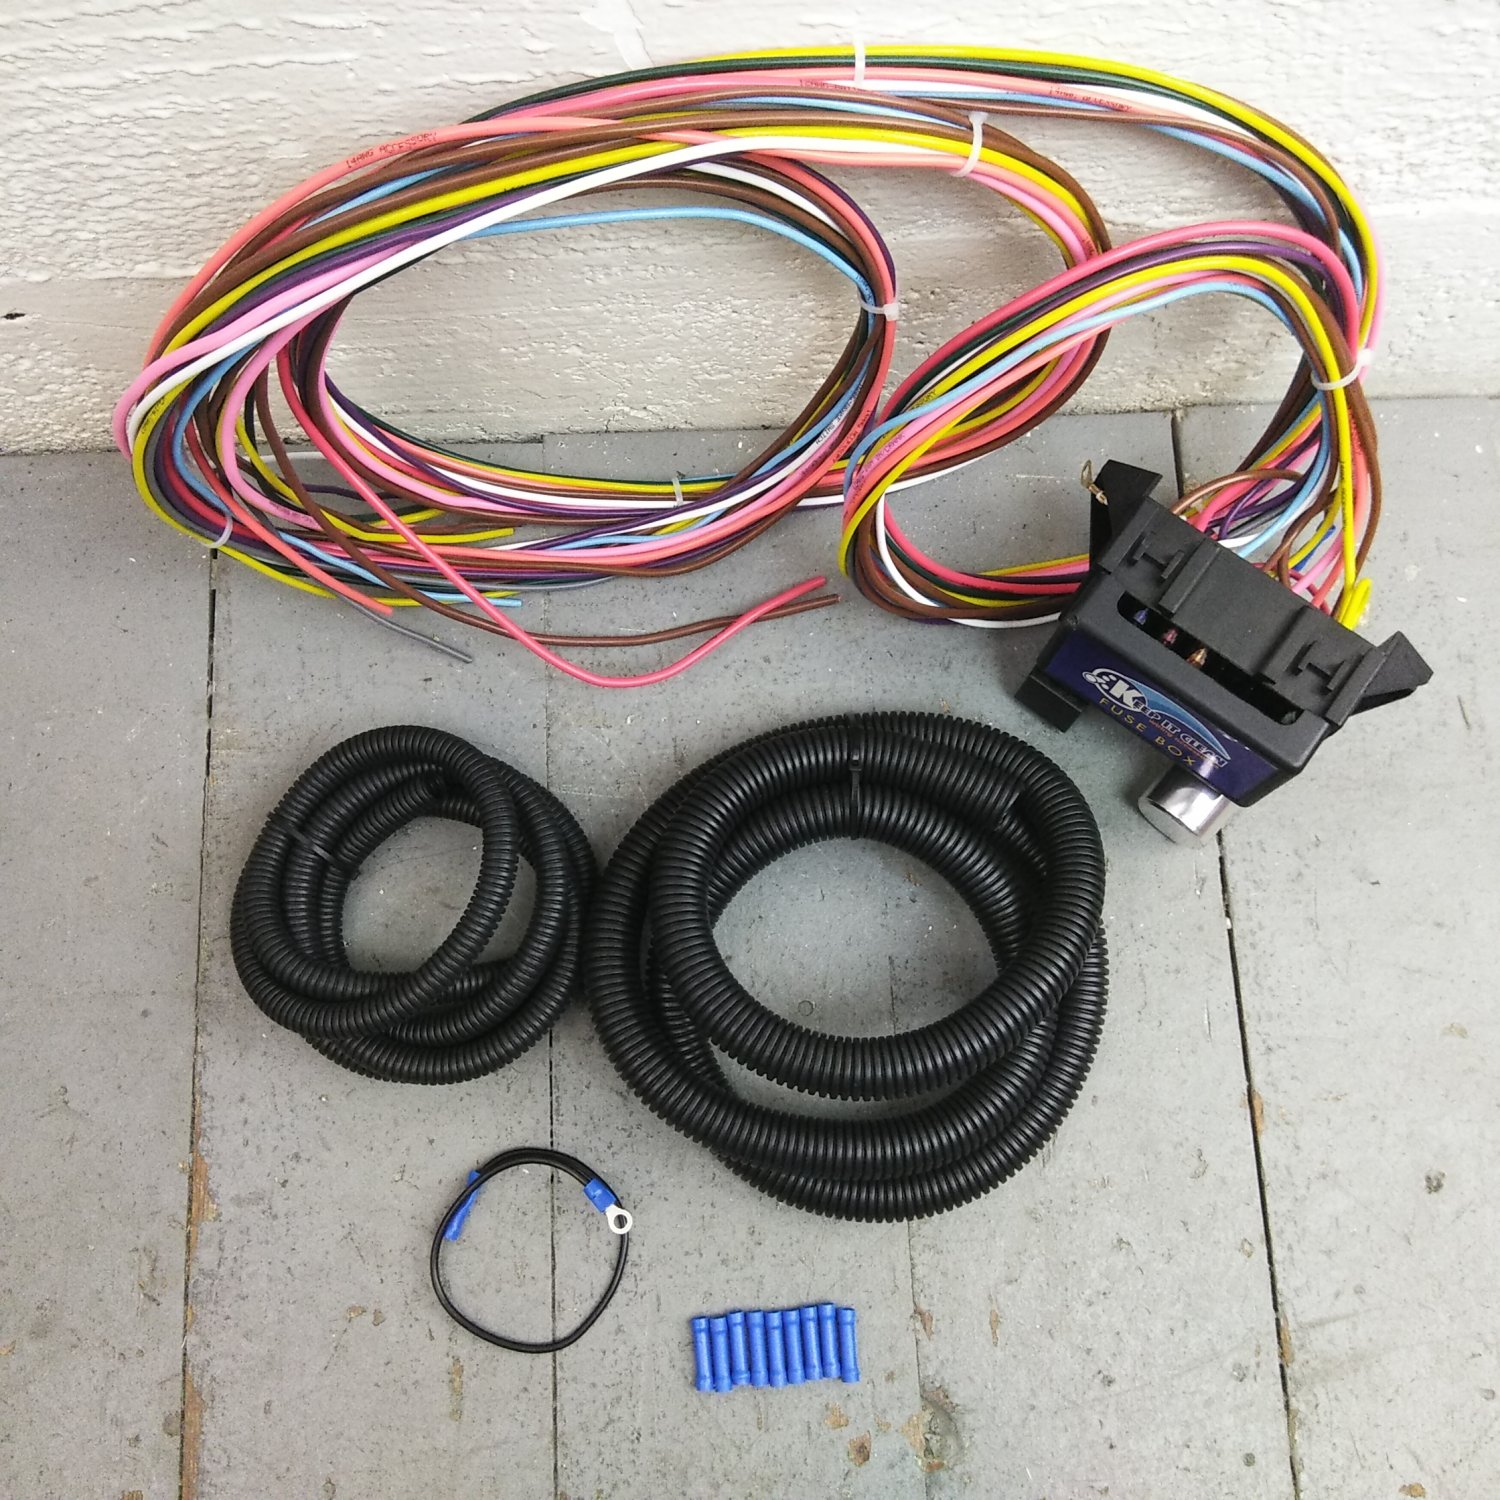 1968 Chevelle Fuse Box Wiring Library 1966 Wire Harness Block Upgrade Kit For 1967 Chevrolet Gto Lemans Bar Product Description C